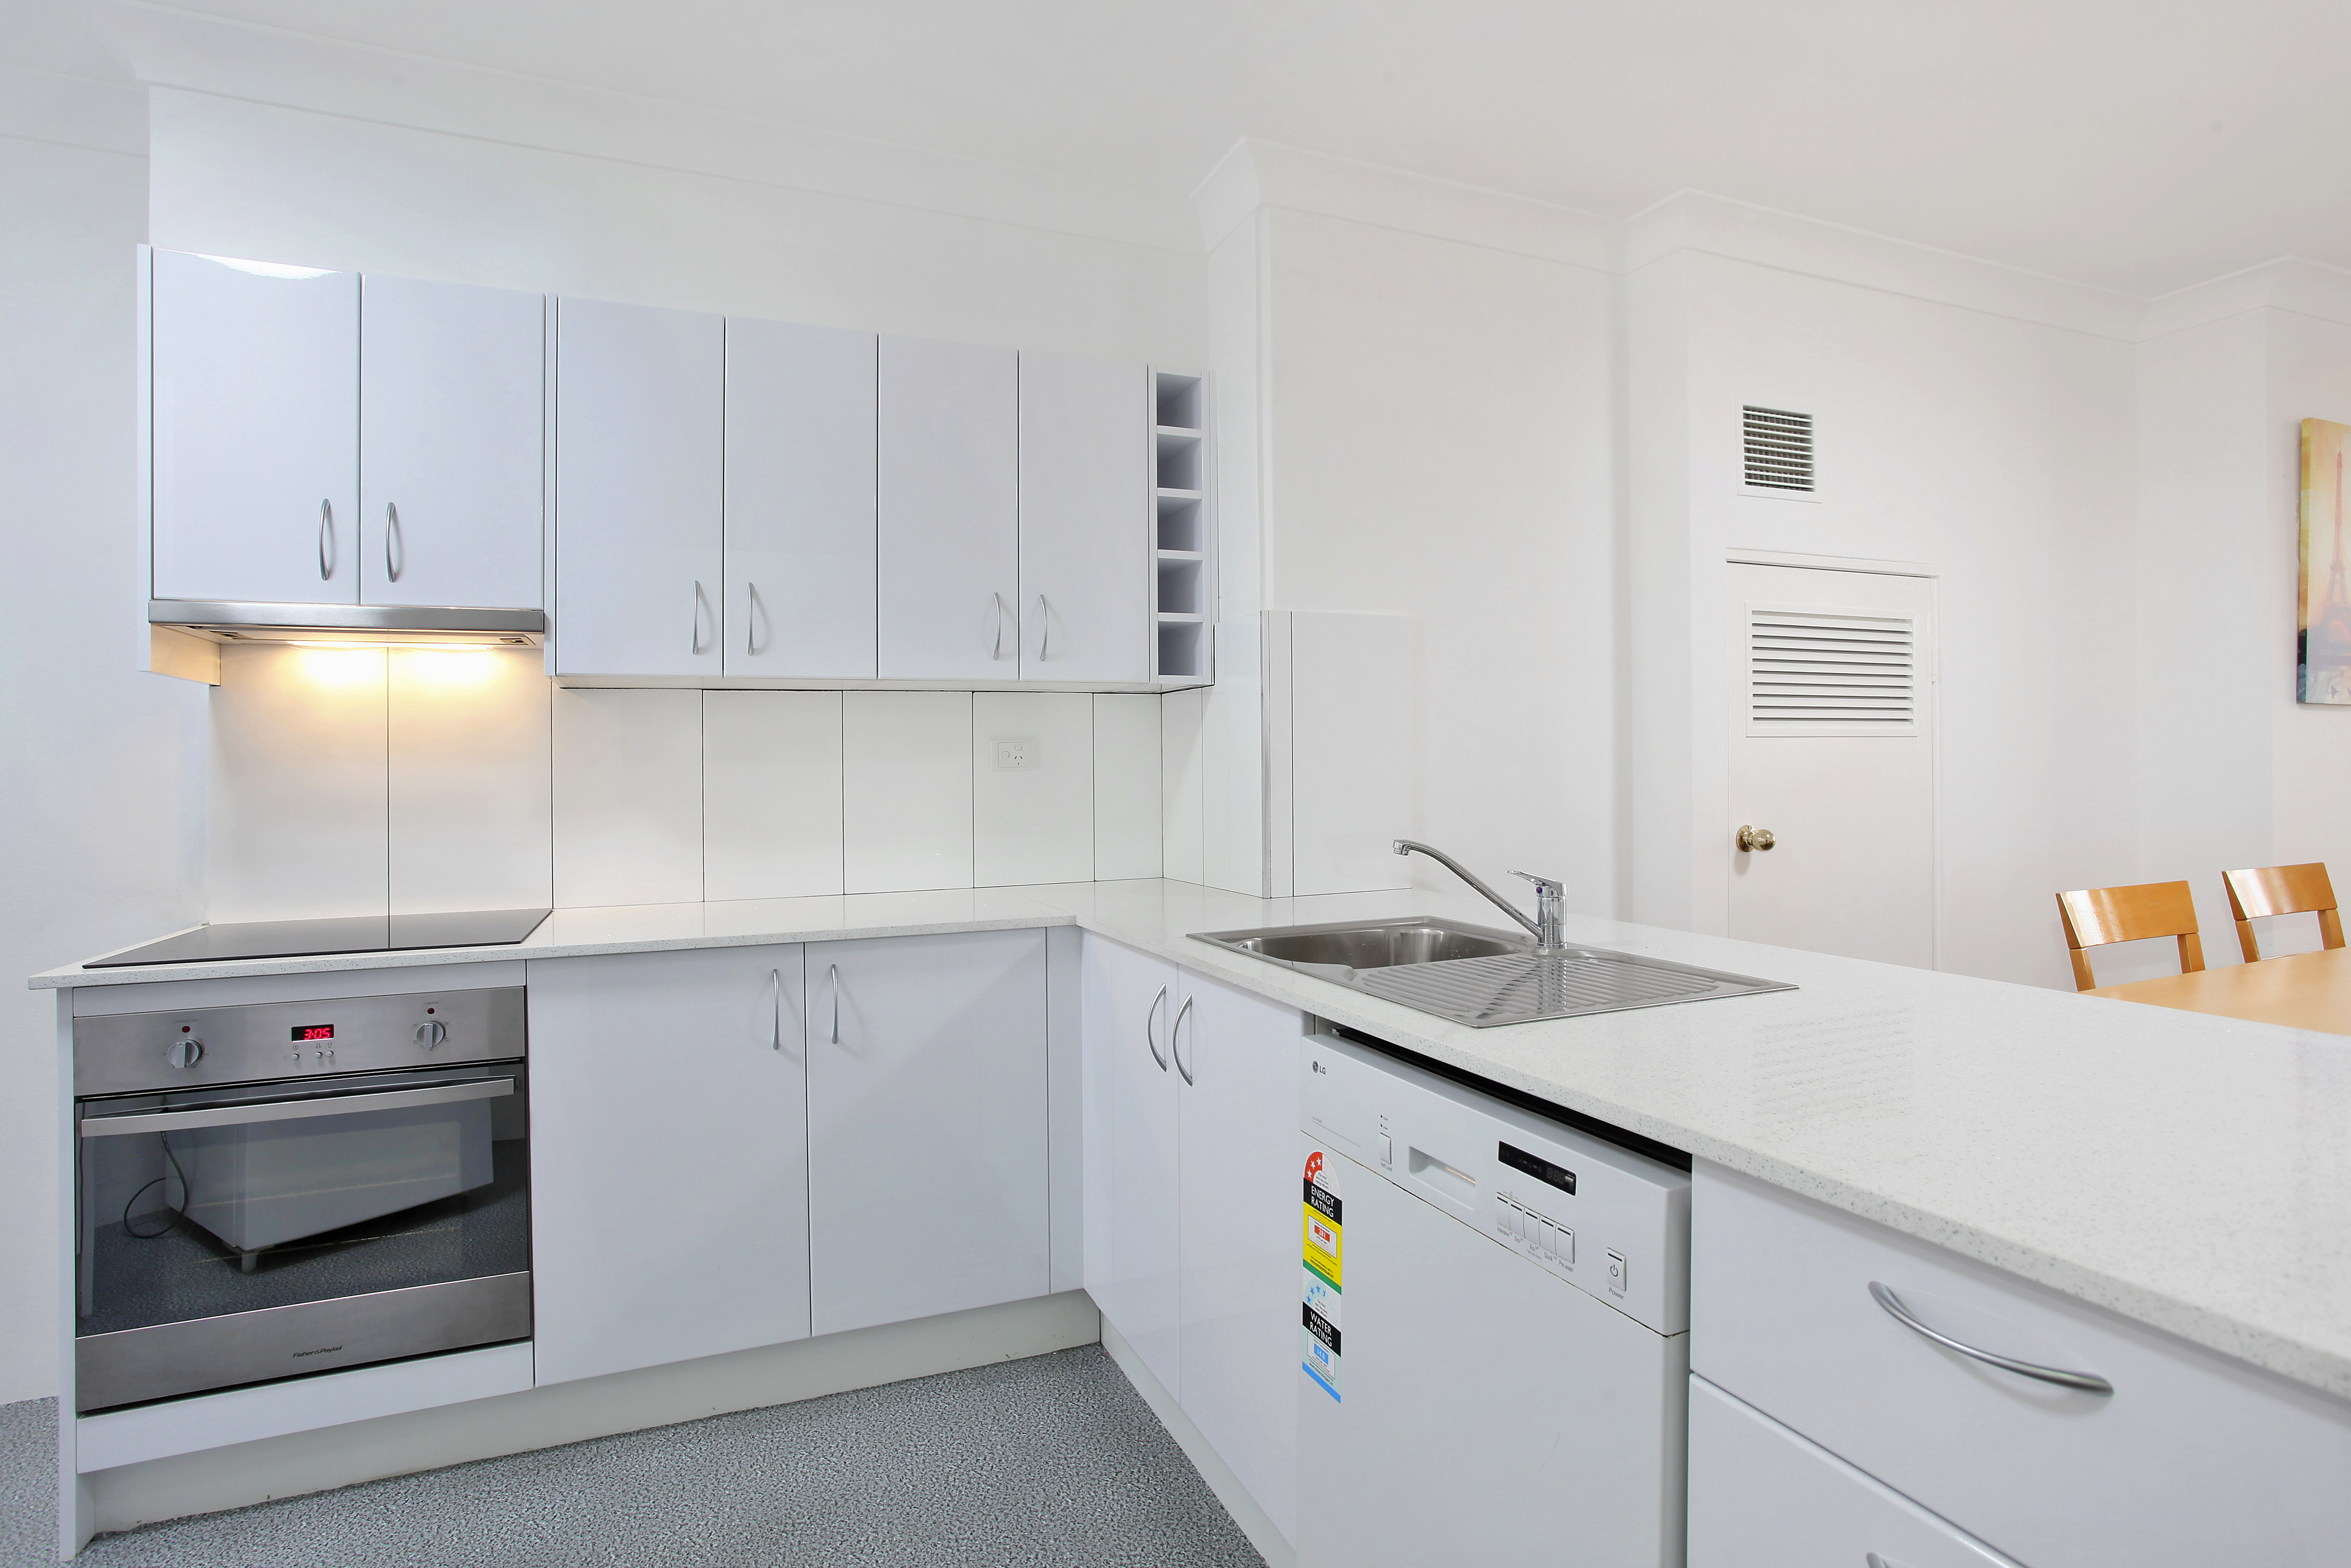 41 17 25 Wentworth Ave Sydney 2000 1 Bedroom Apartment For Sale 94559 Mehouse